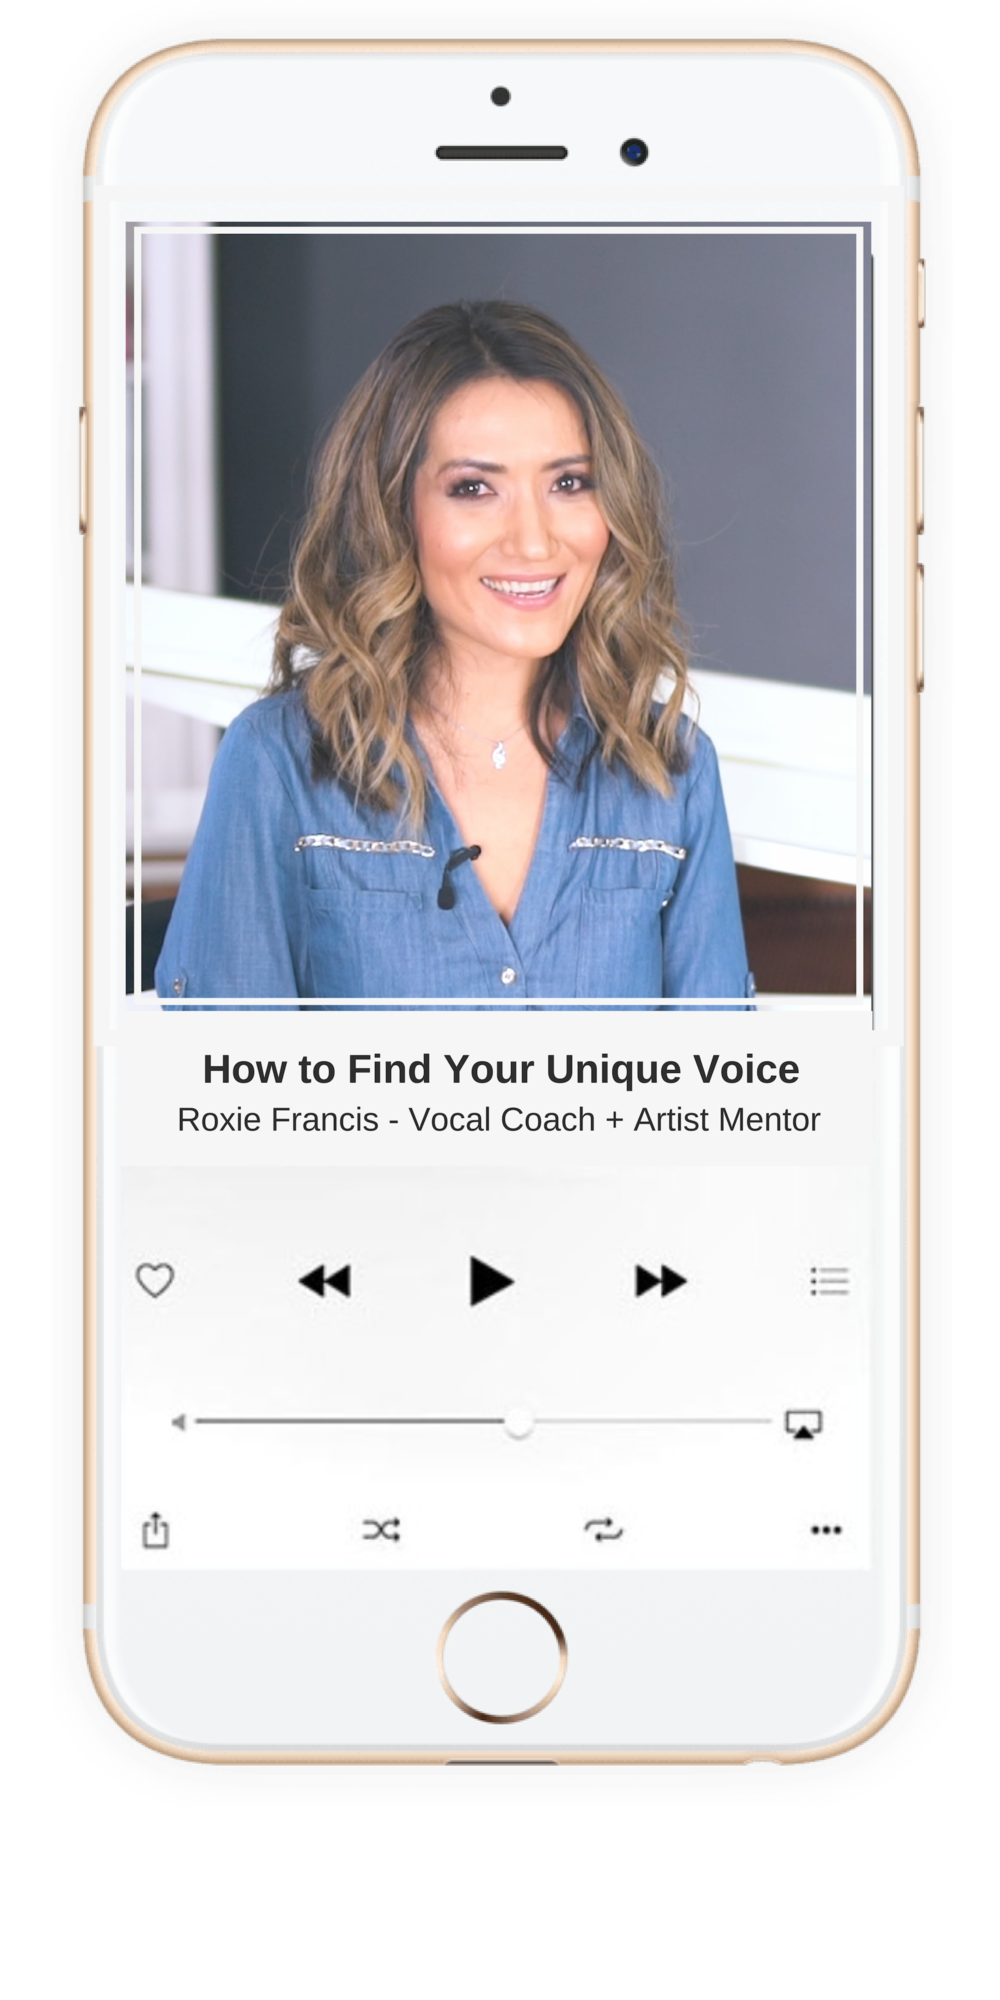 Find Your Unique Voice, by Roxie Francis at IHMV